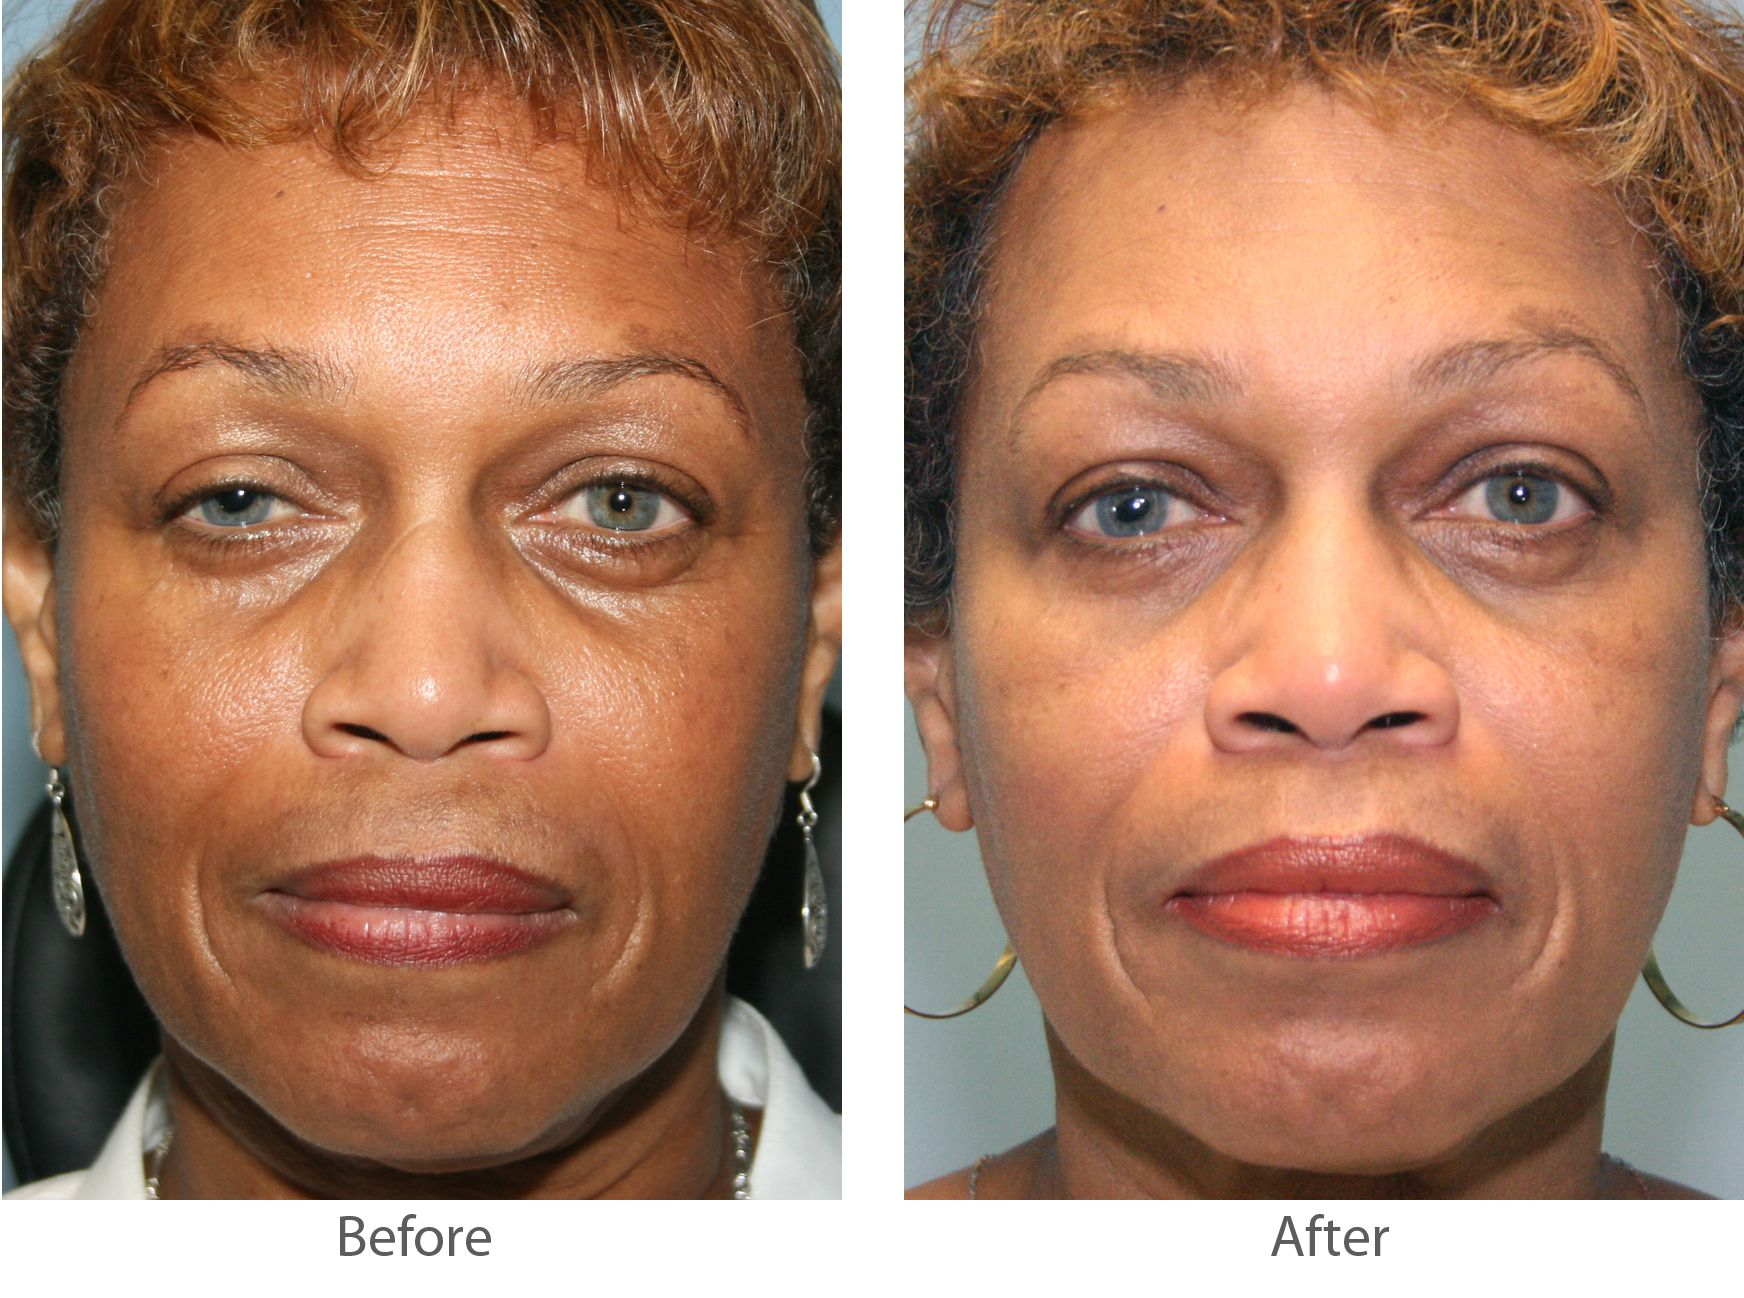 Eyelid Surgery Recovery During Your Lubricating Ointment And Cold Compresses May Be